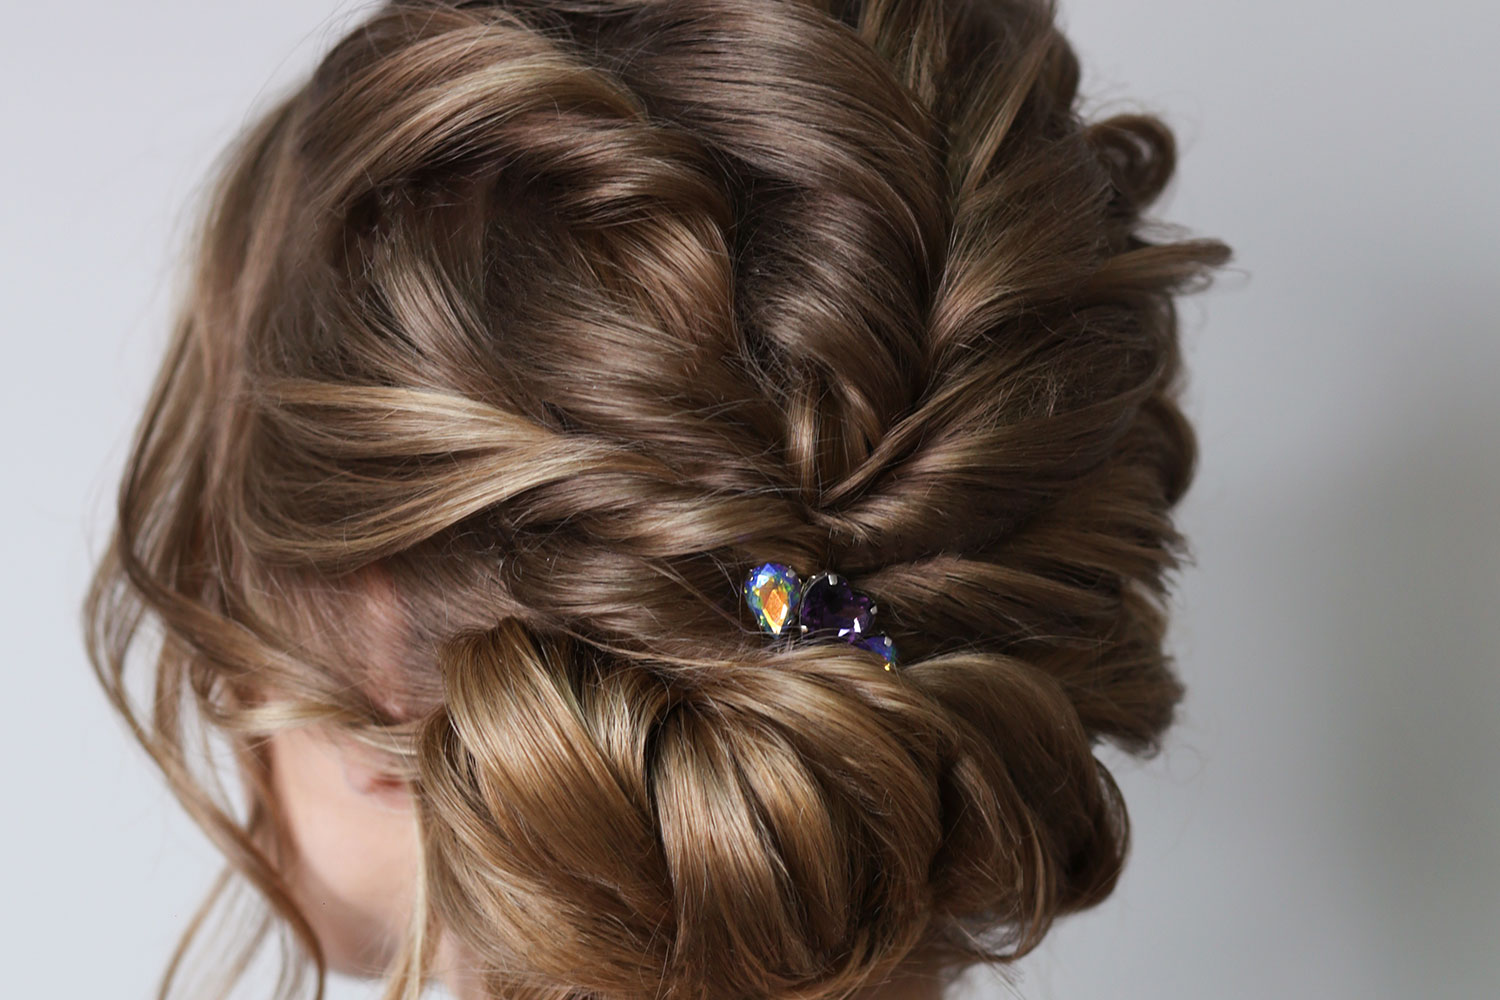 sbs-hair-up-do.jpg